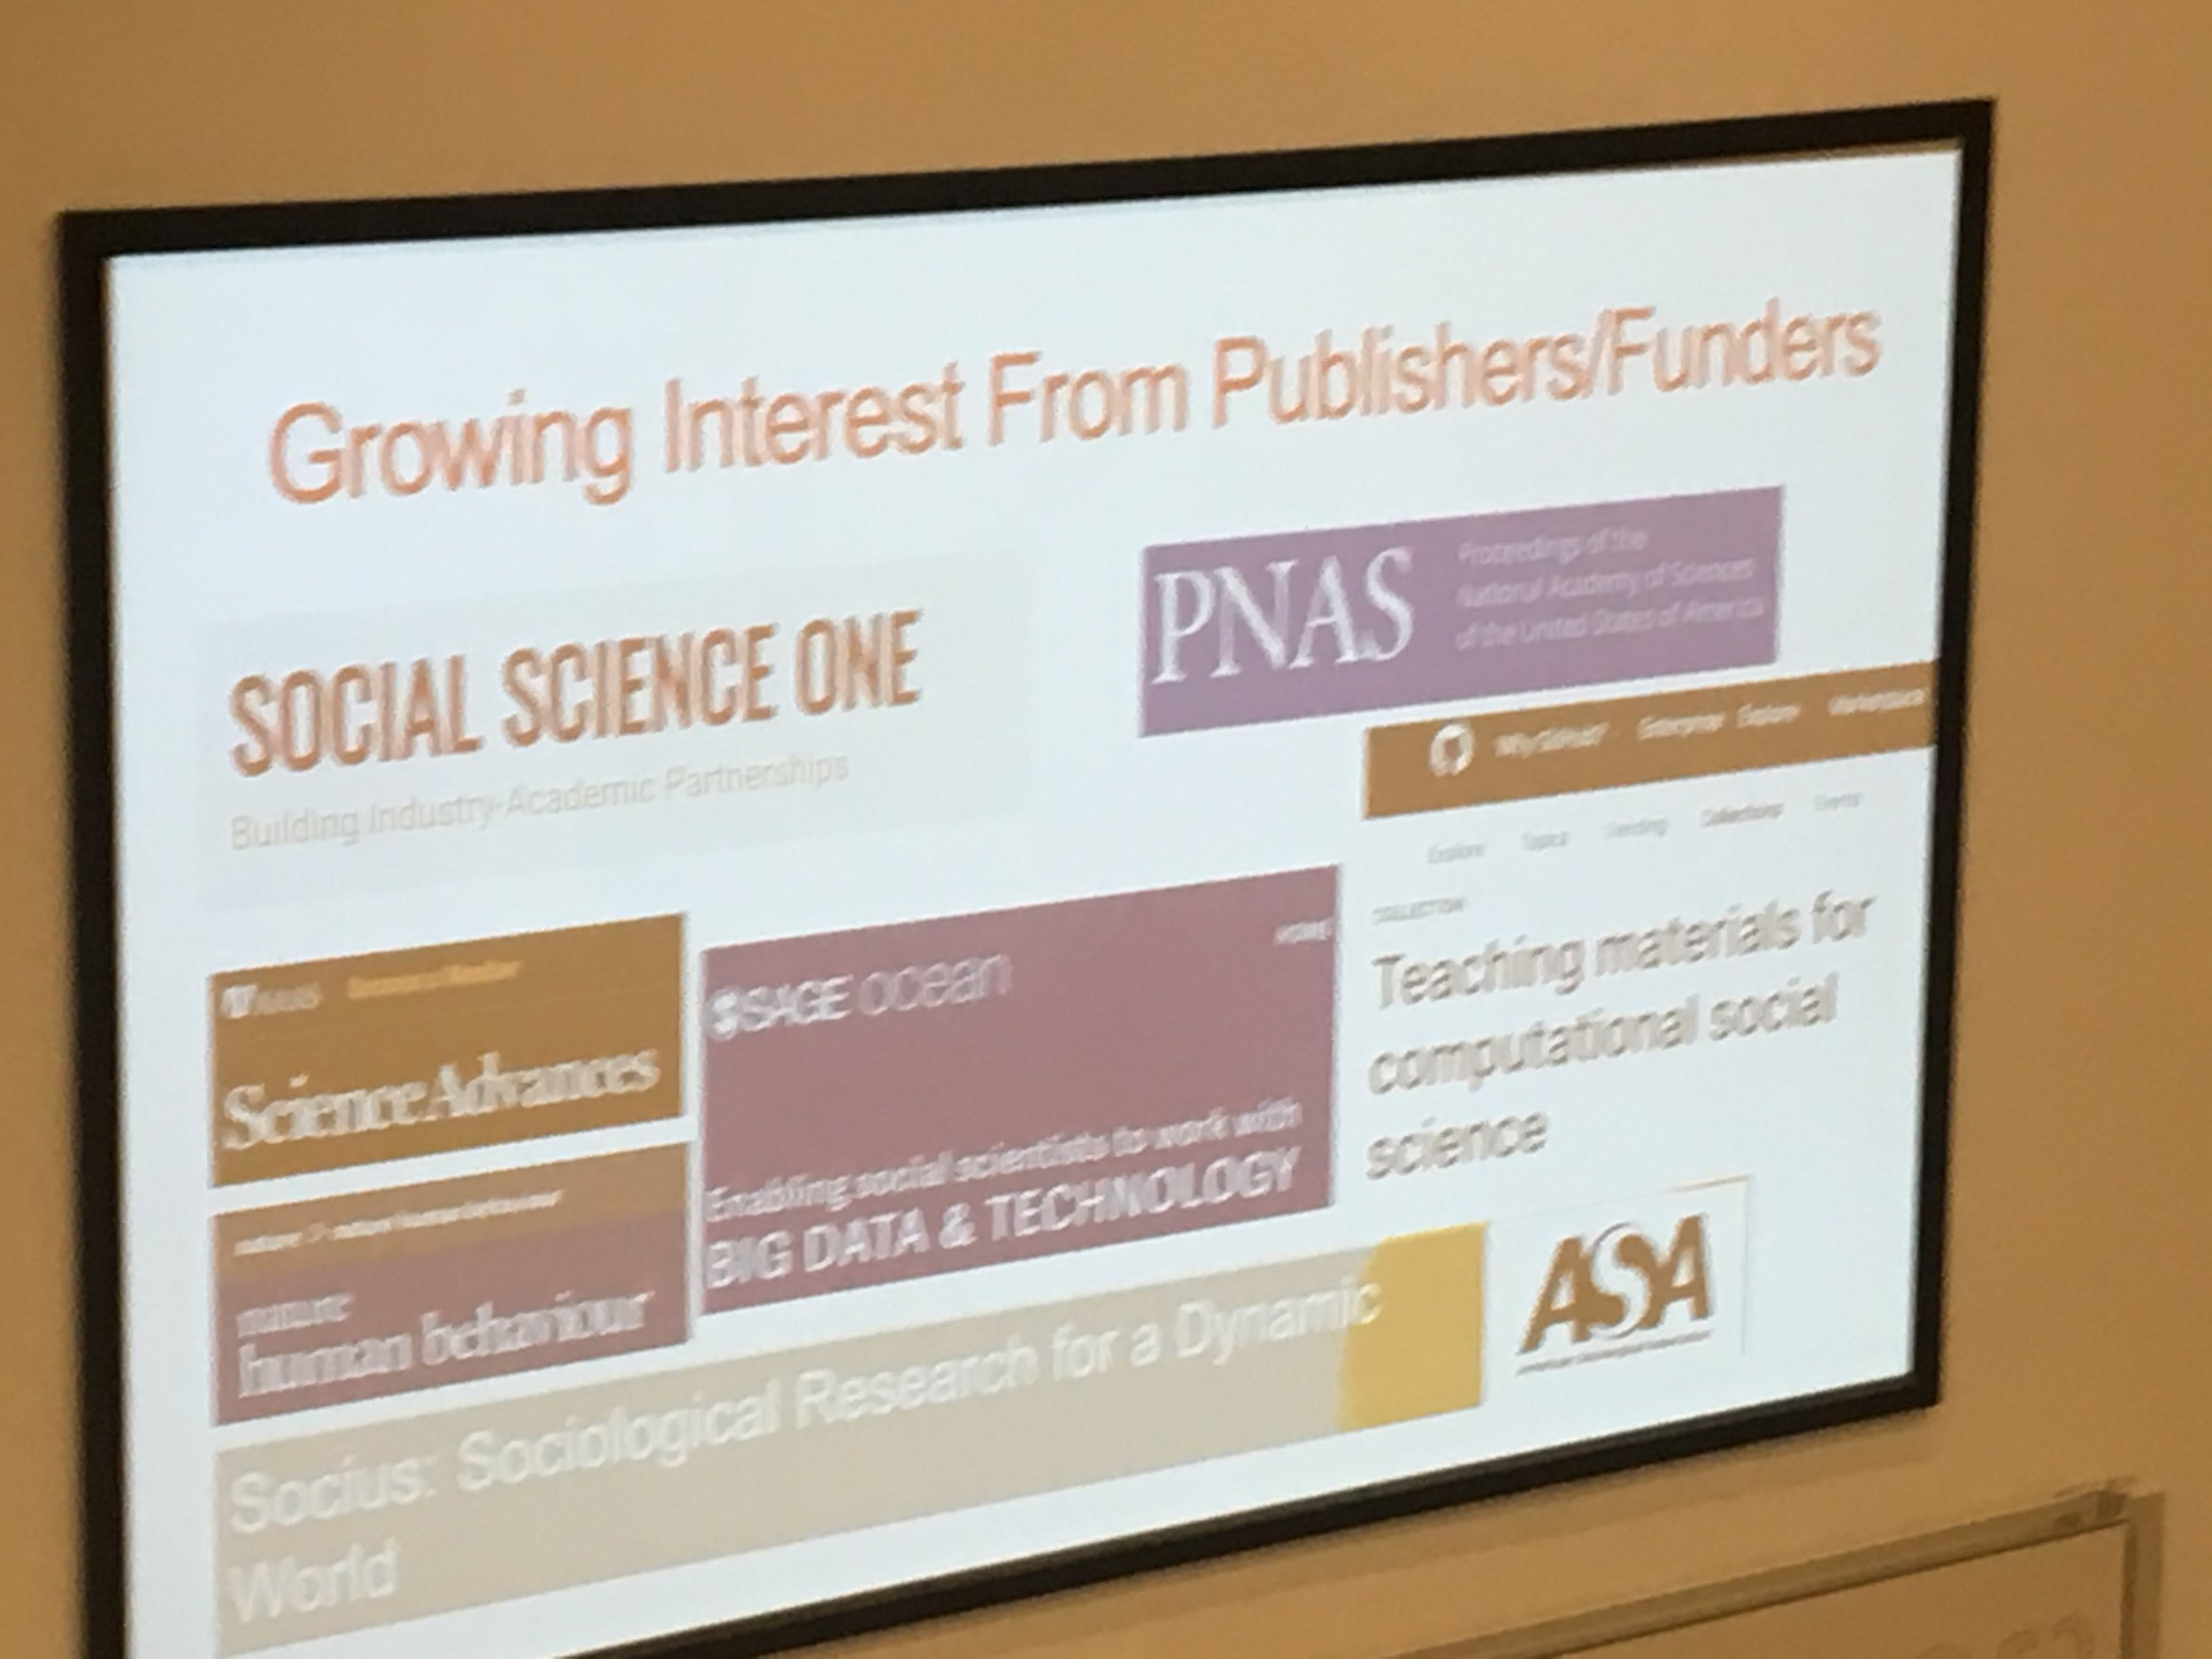 slide showing commitment from publishers and funders to computational social science